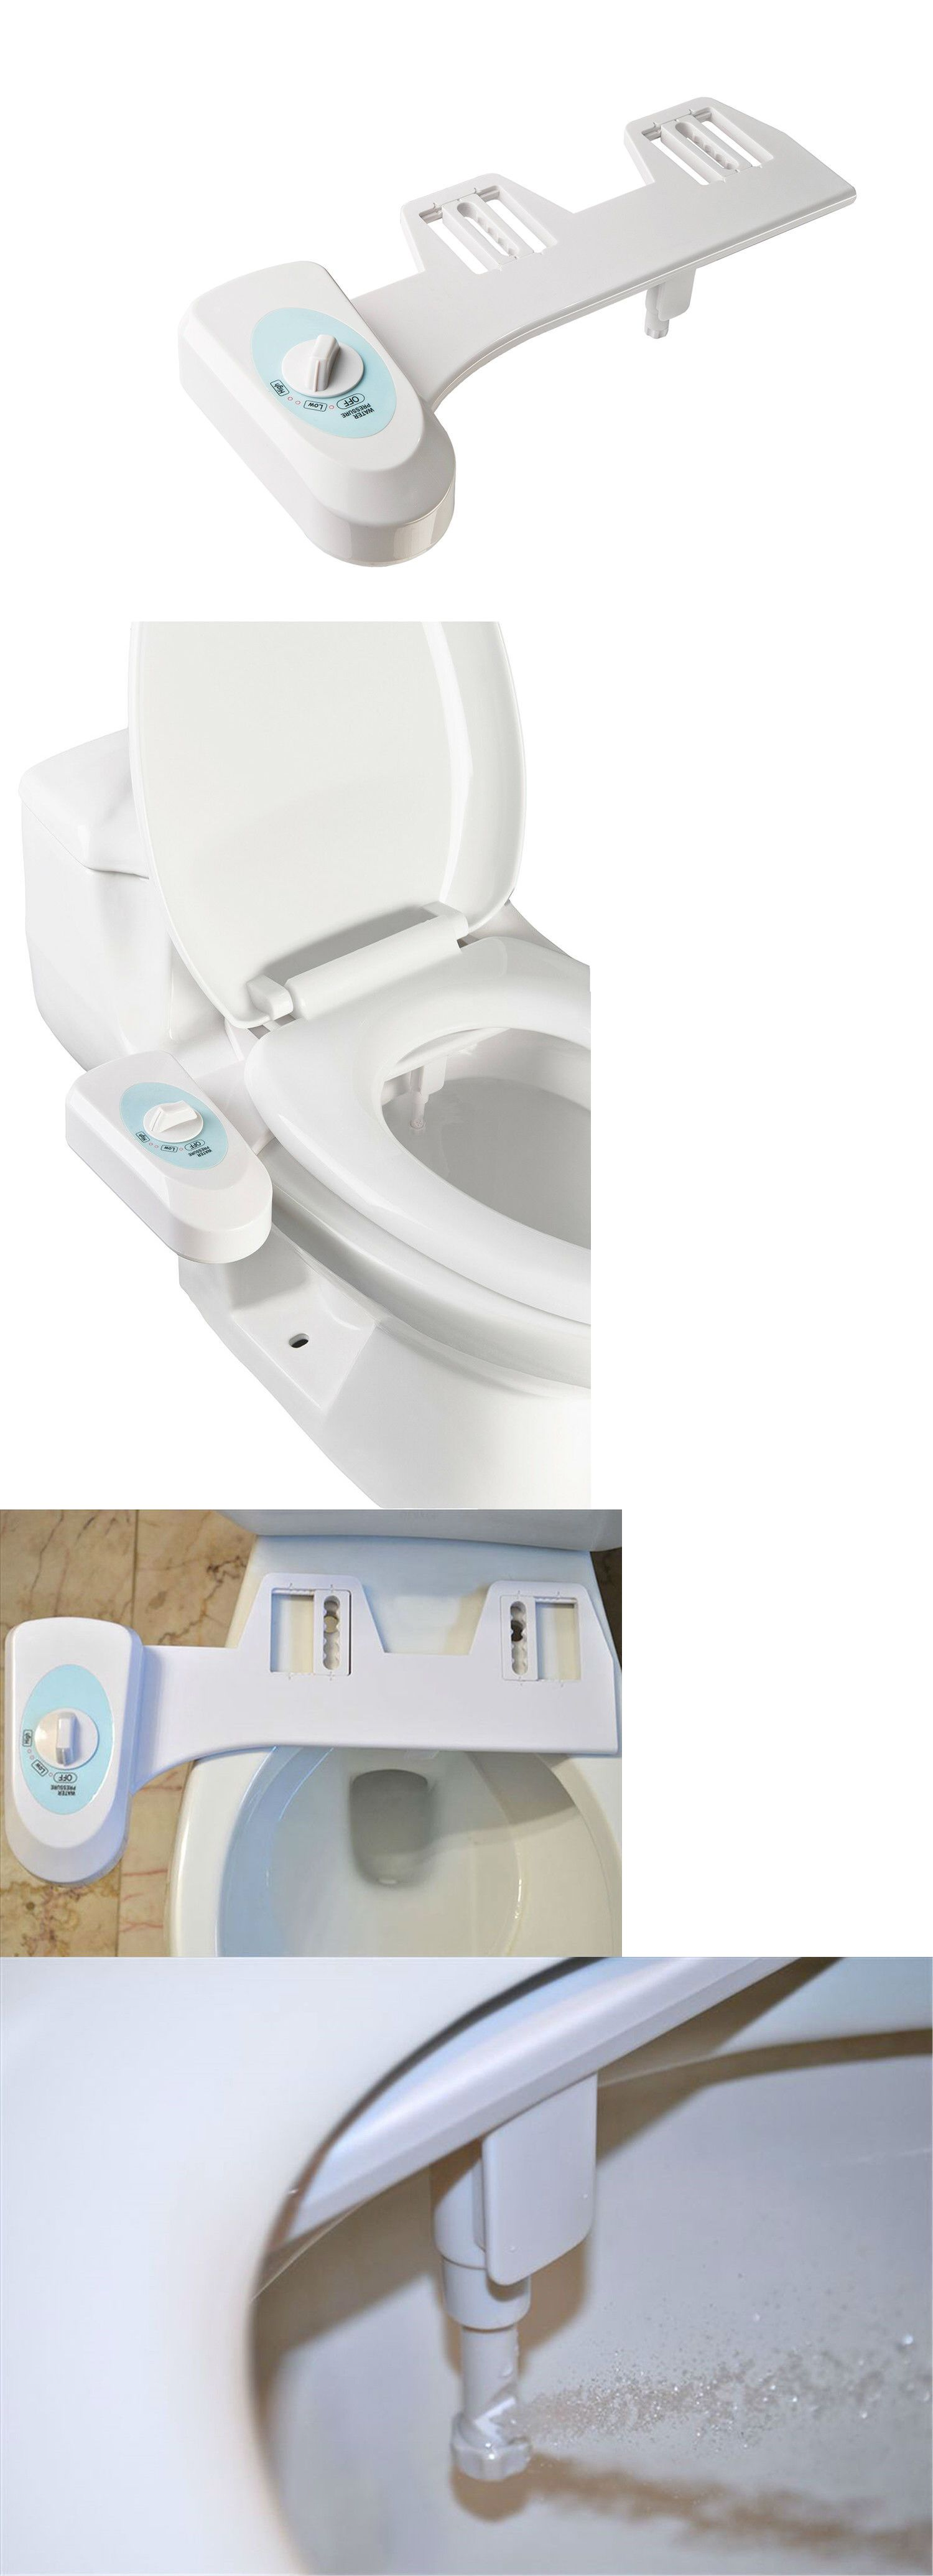 Bidets And Toilet Attachments 101405 Bidet Toilet Seat Attachment Mechanical Water Spray Tushy Fresh Cleaning Kit Buy Bidet Toilet Seat Bidet Bidet Toilet